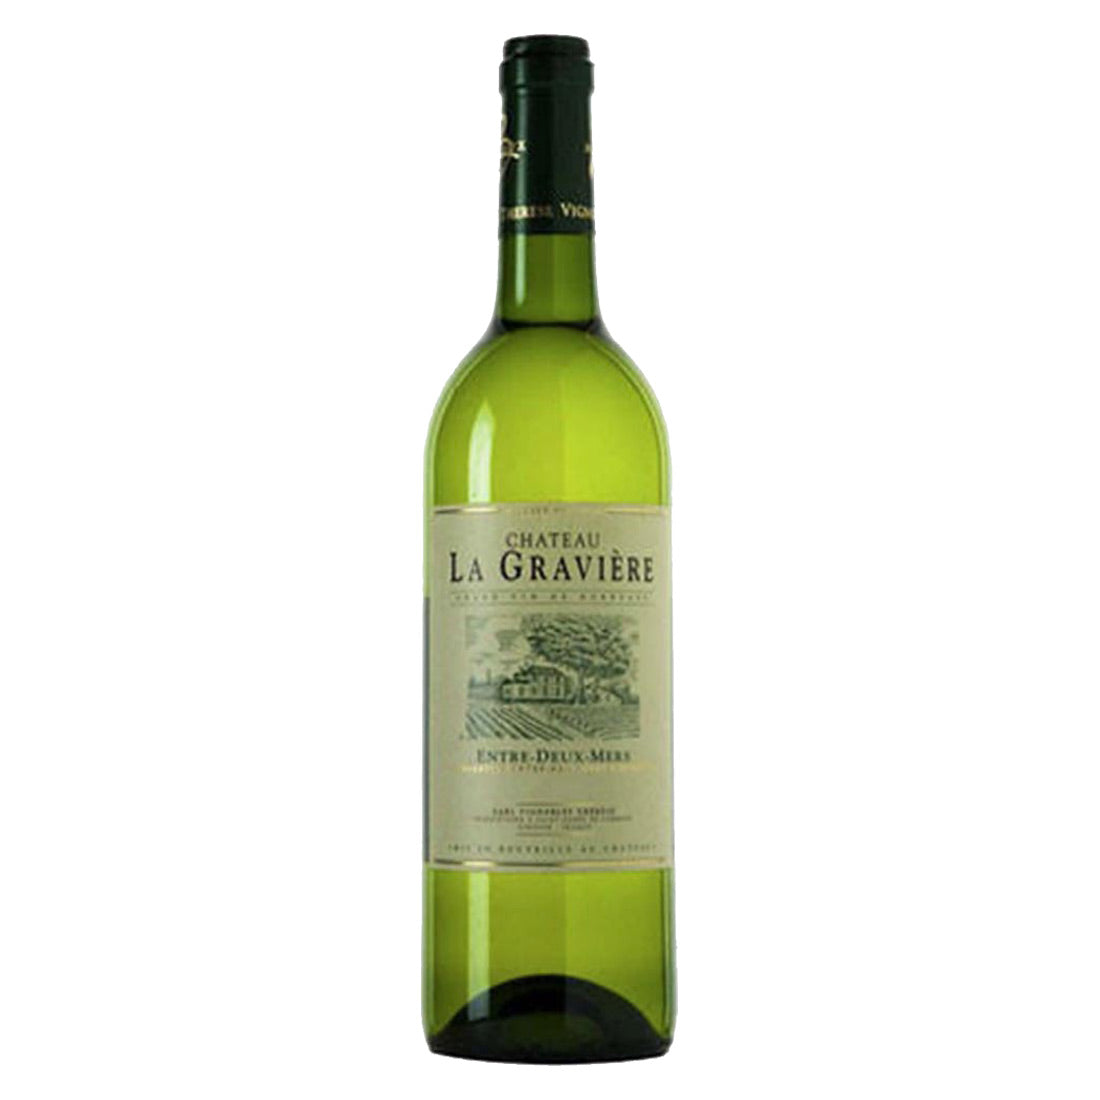 Chateau La Graviere Blanc 2016 - 750ml White Wine - Drinkka Alcohol Delivery Best Whiskey Wine Gin Beer Vodkas and more for Parties in Makati BGC Fort and Manila | Bevtools Bar and Beverage Tools